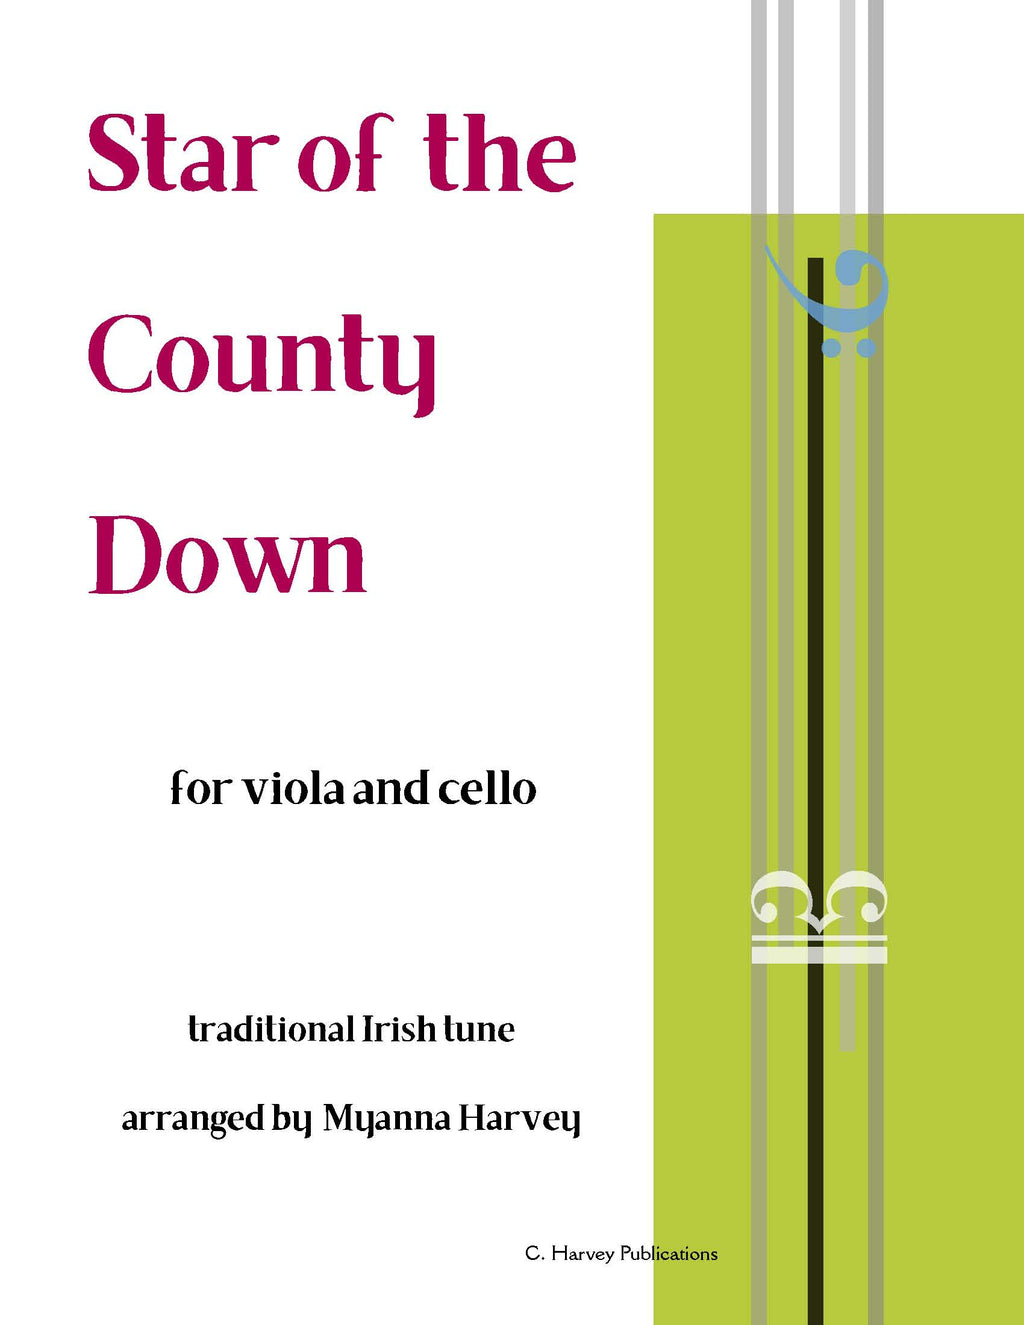 Star of the County Down for String Duo - PDF Download